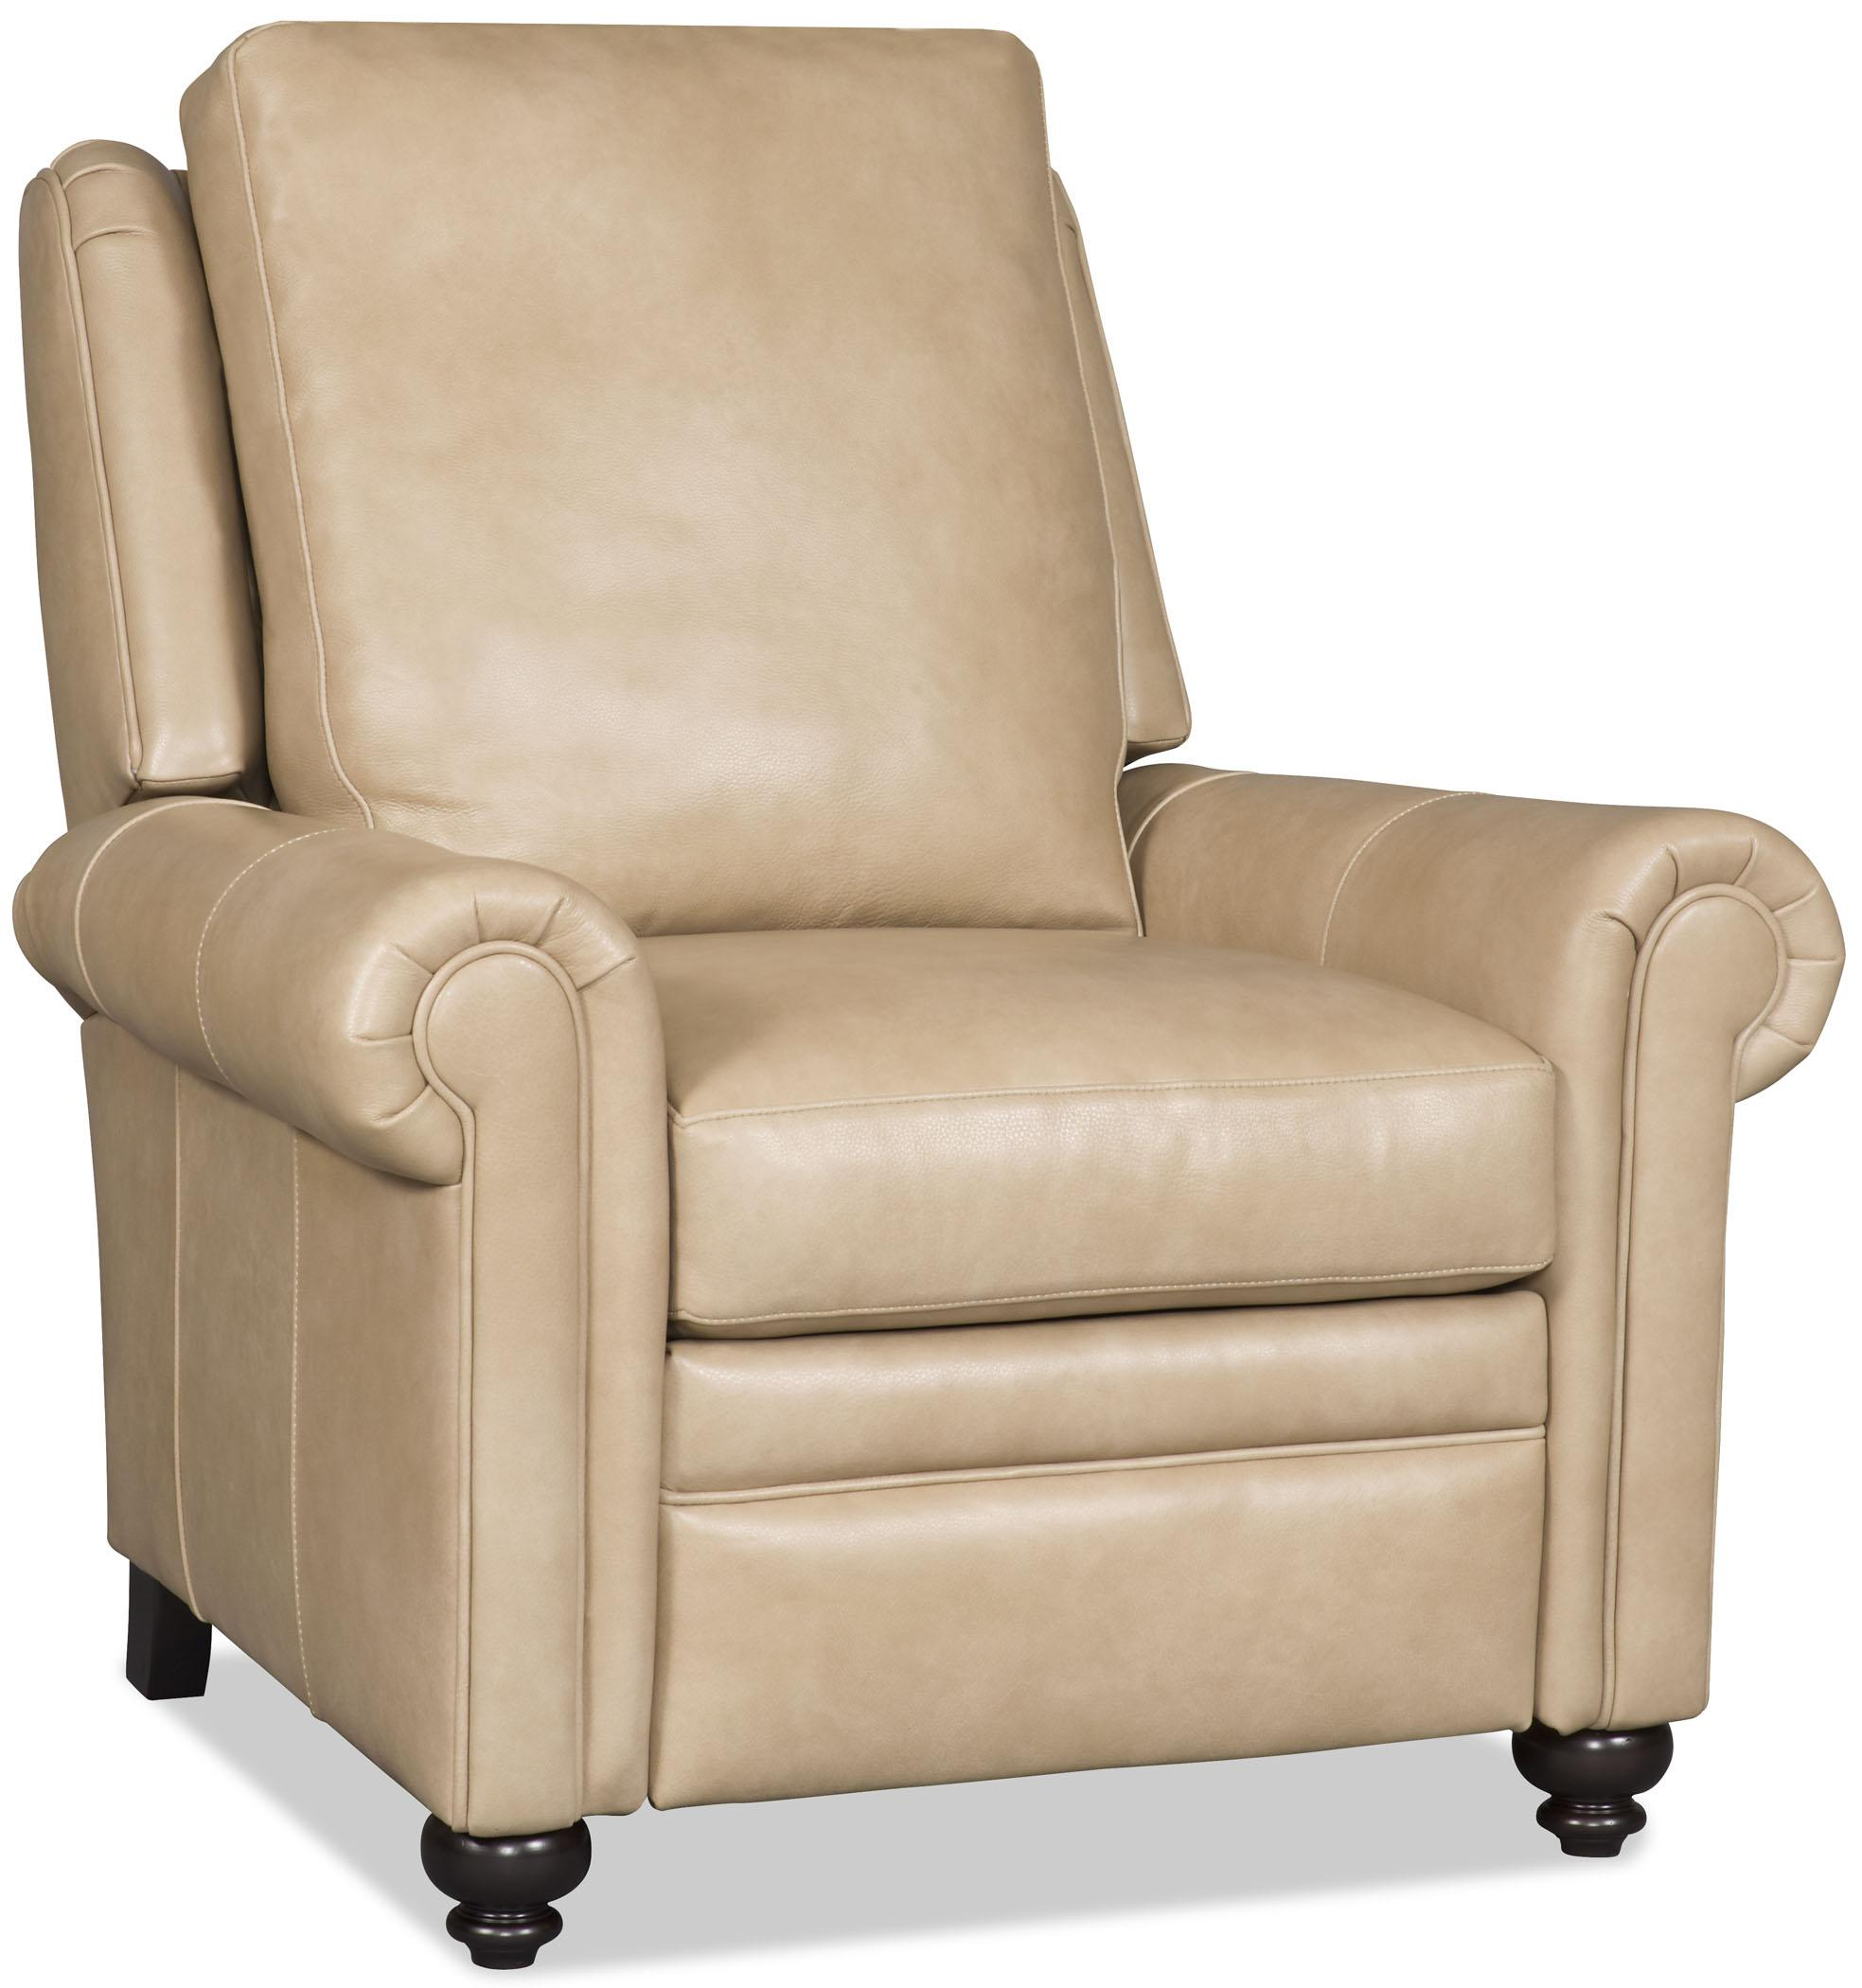 Bradington Young Daire 3172 Customizable High Leg Recliner With Rolled Panel Arms Thornton Furniture High Leg Recliner